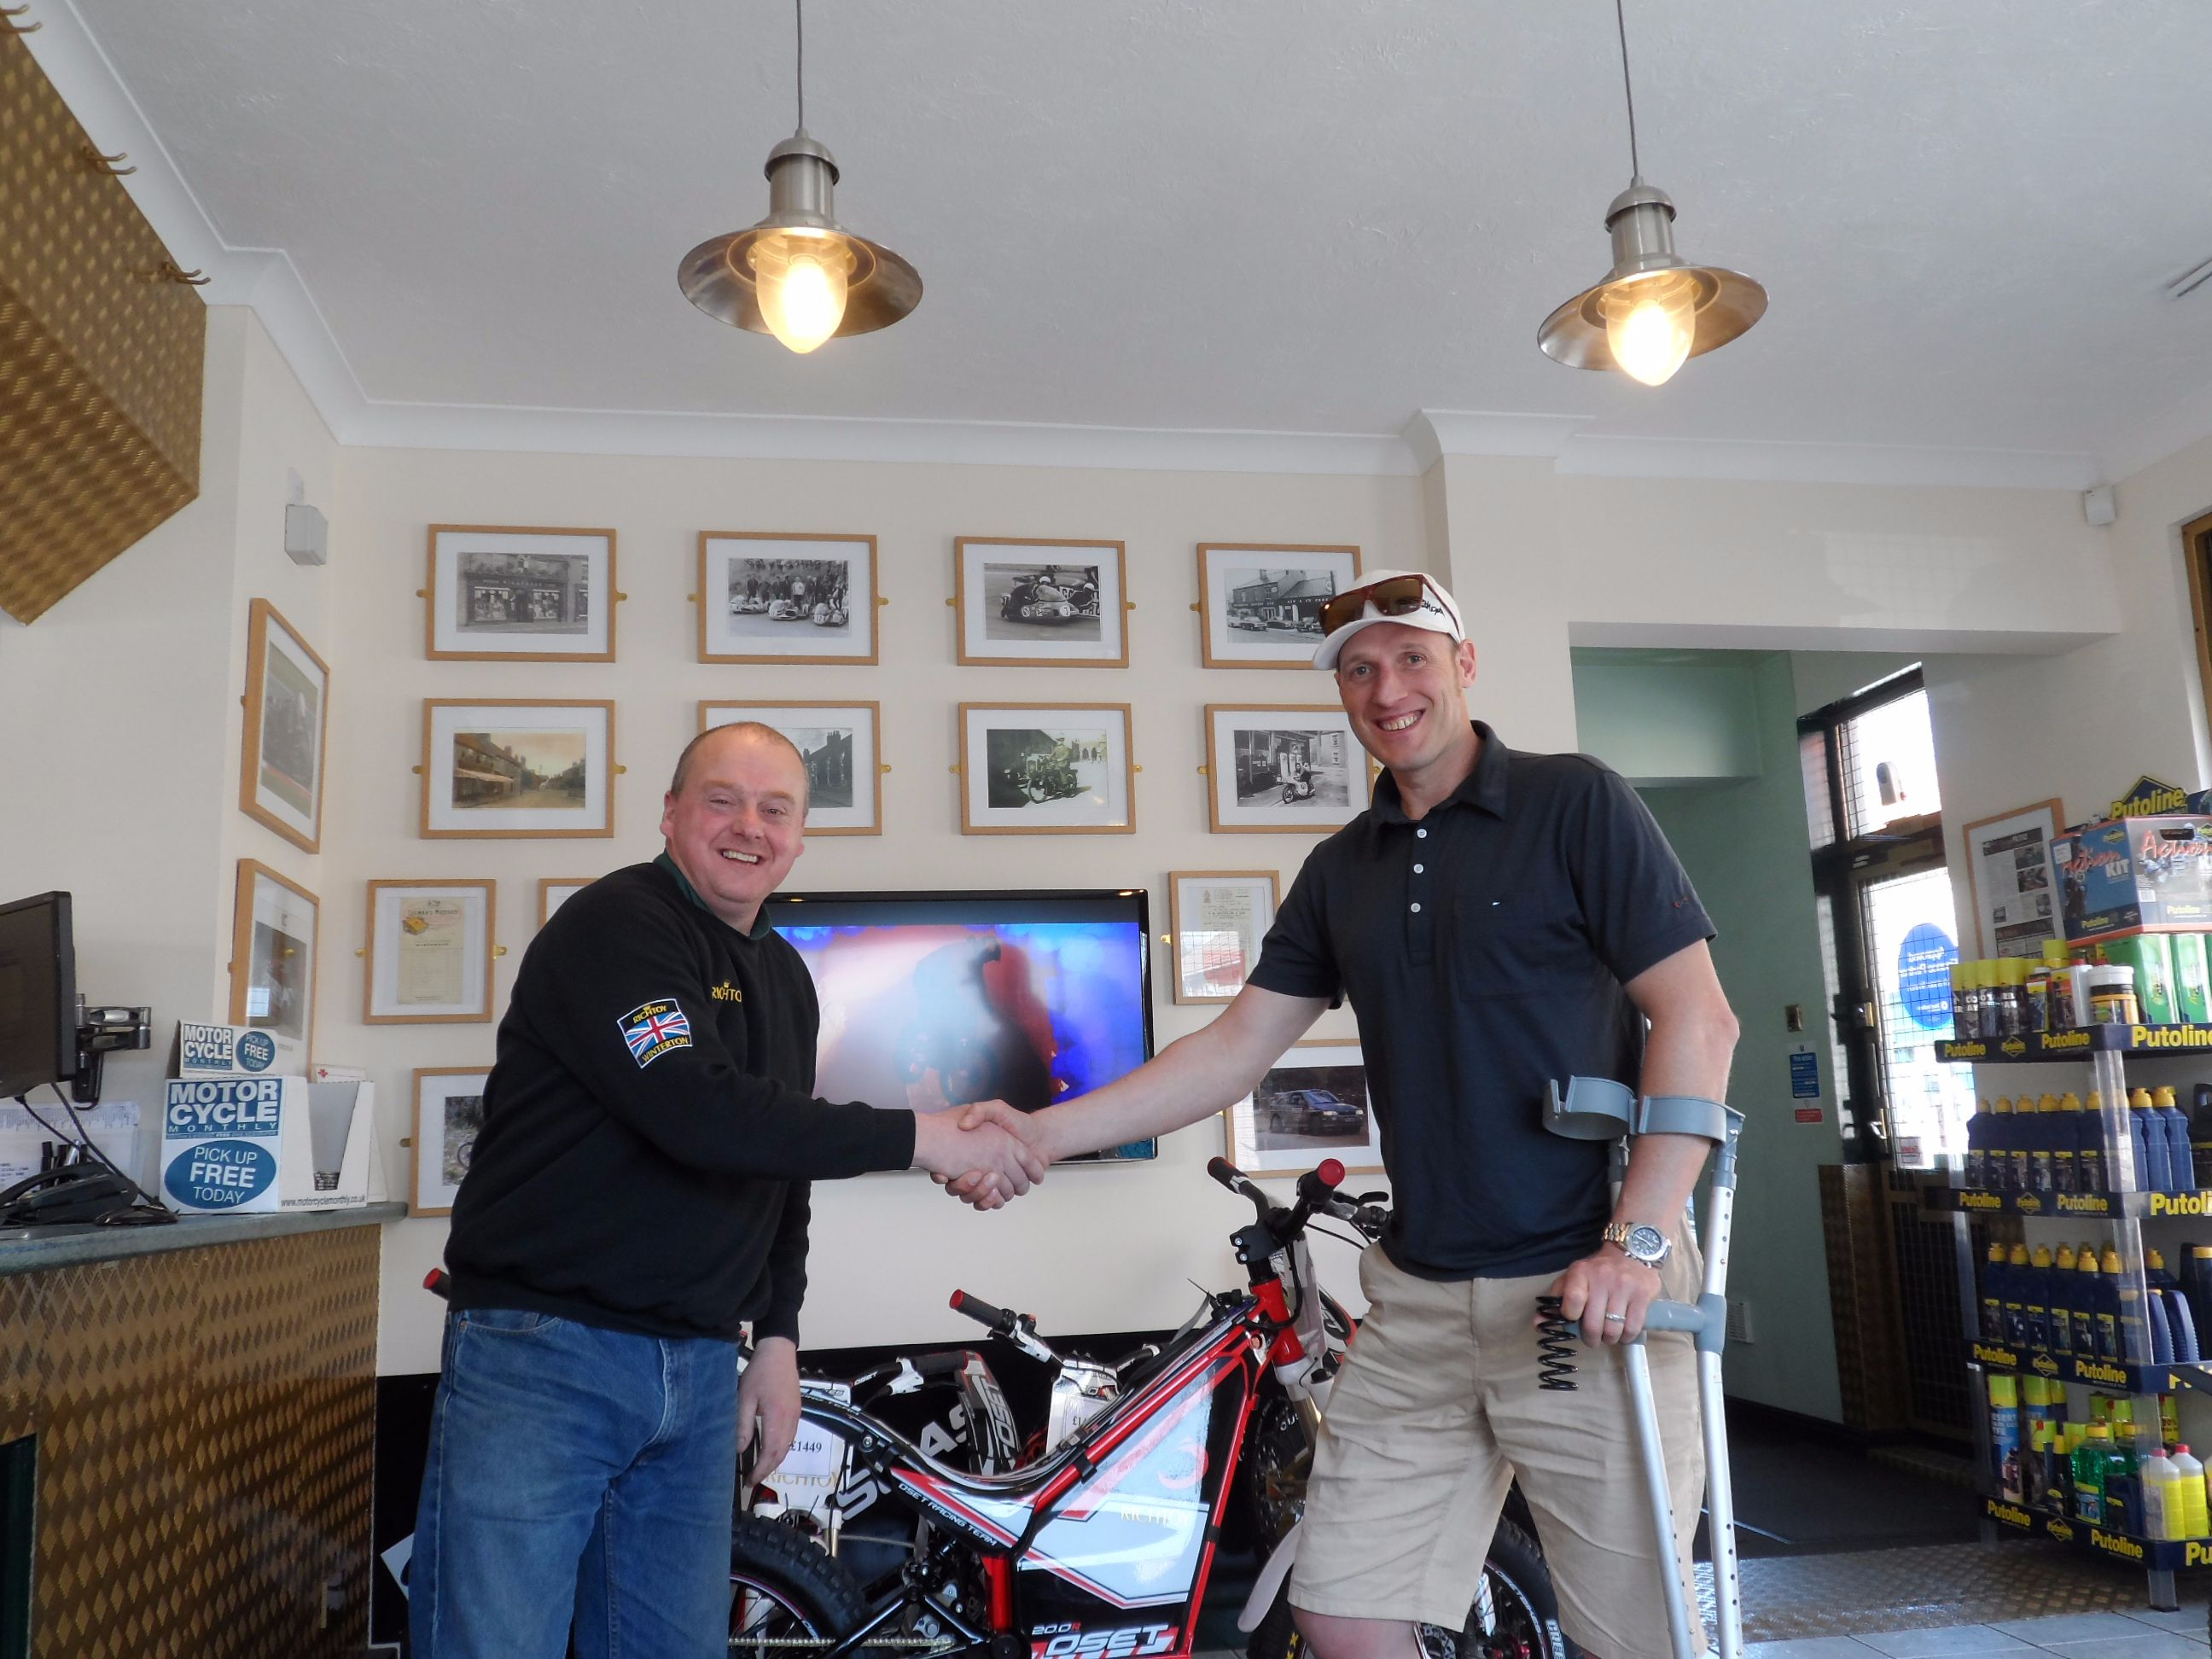 Down Hill World Champion Steve Peat collecting an OSET Bikes 20.0 Racing for his son